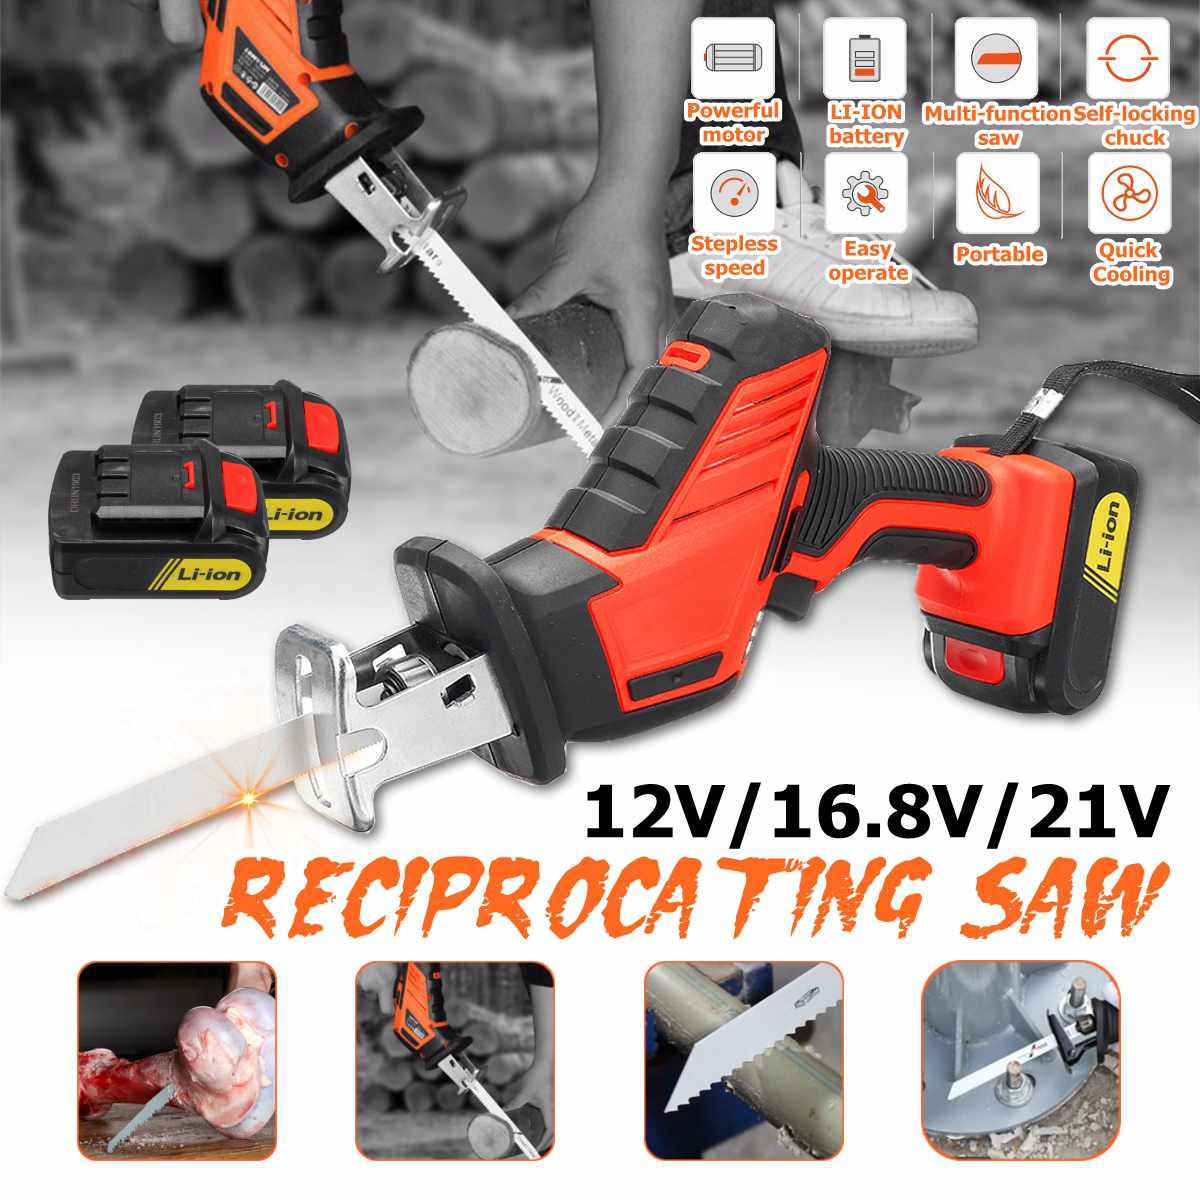 12V/16.8V/21V Reciprocating Saws Saber Saw Portable Cordless Electric Power Tools jig saw with 2pcs Rechargeable Lithium Battery|Electric Saws| |  - title=